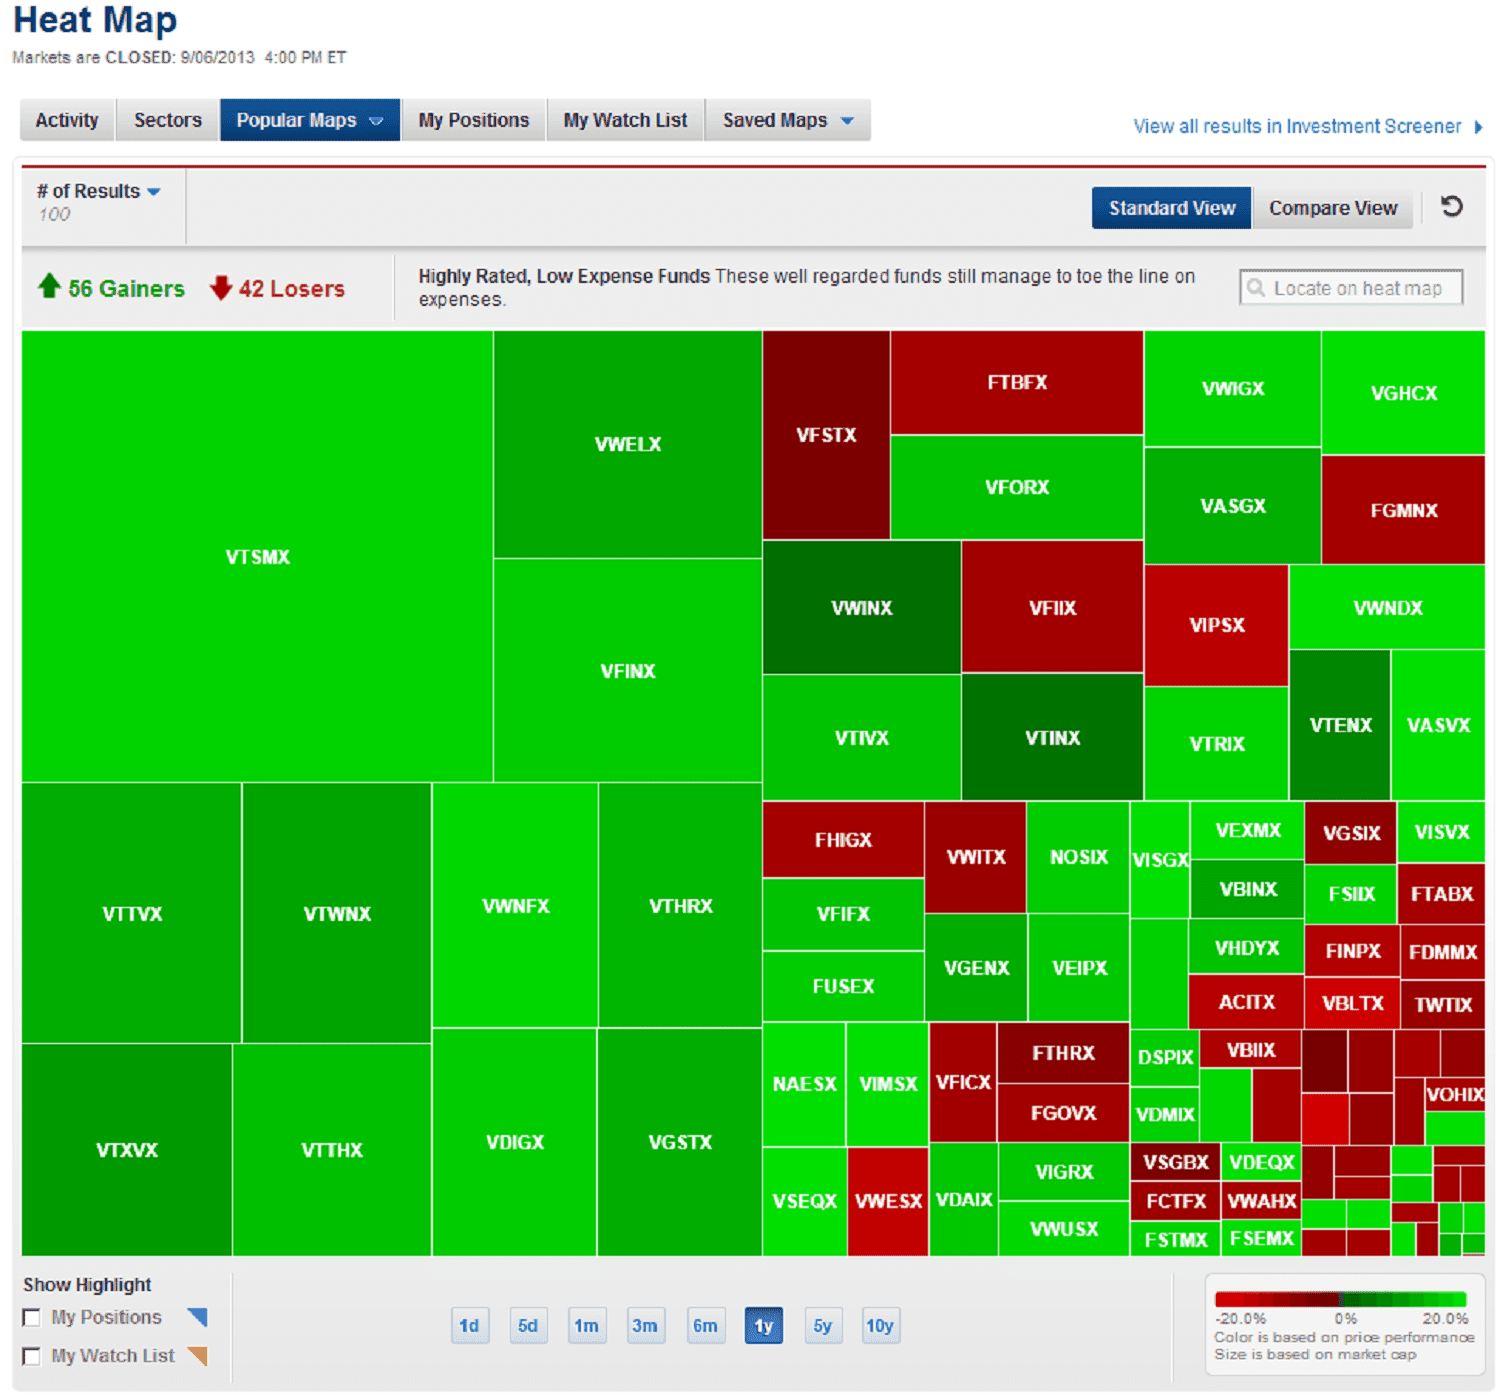 Easy To Read Stock Market Maps Dow Heat Map on market heat map, risk heat map, trulia heat map, global heat map, google heat map, excel heat map, business heat map, djia heat map, world heat map, sql server heat map, microsoft heat map, trading heat map, united states heat map, nyse heat map, sas heat map, stock heat map, sector heat map, industry heat map, esri heat map,